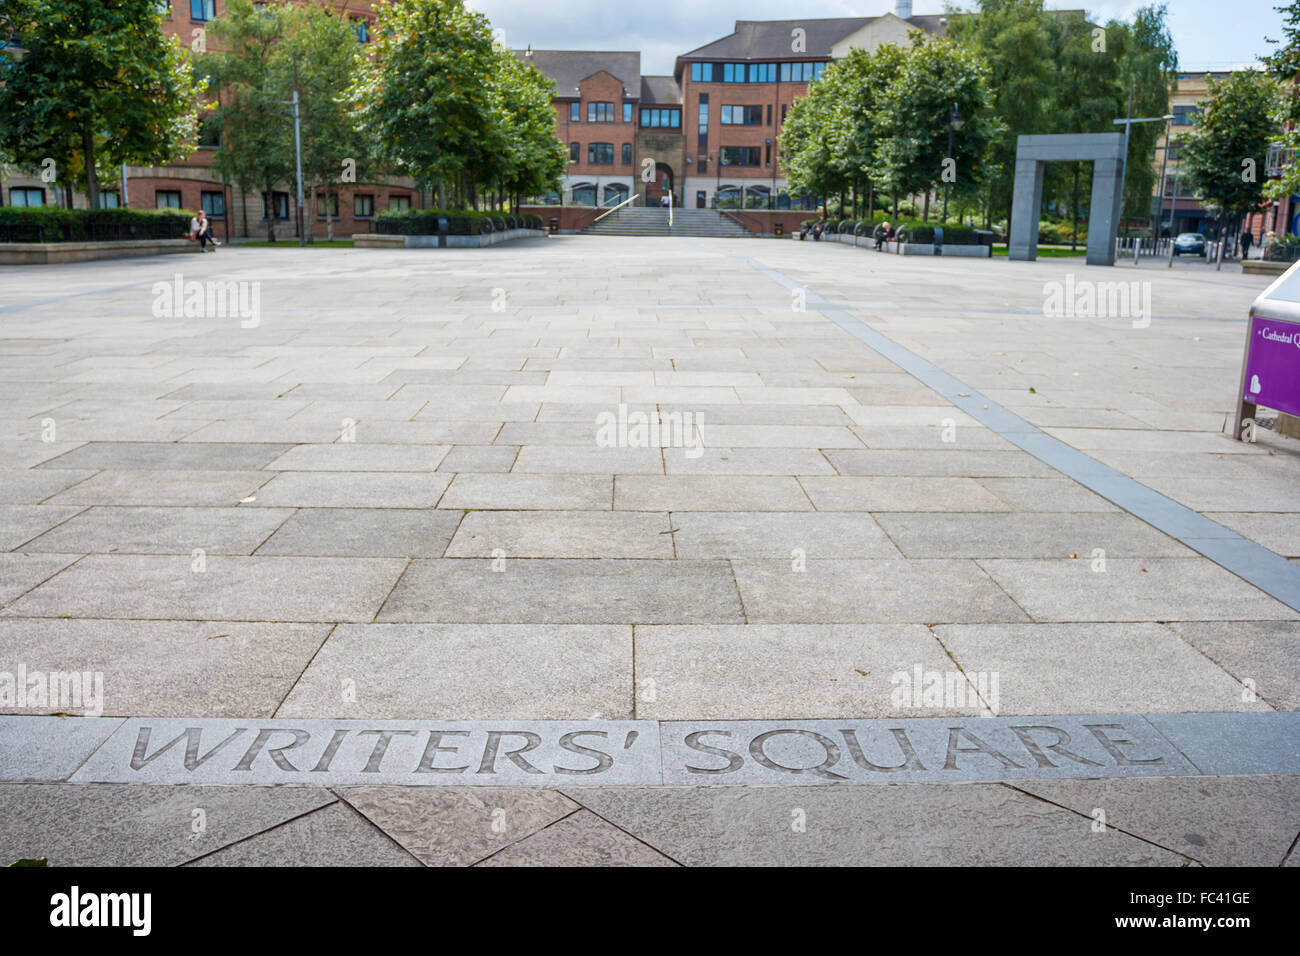 View of The Writers Square in Belfast, North Ireland - Stock Image